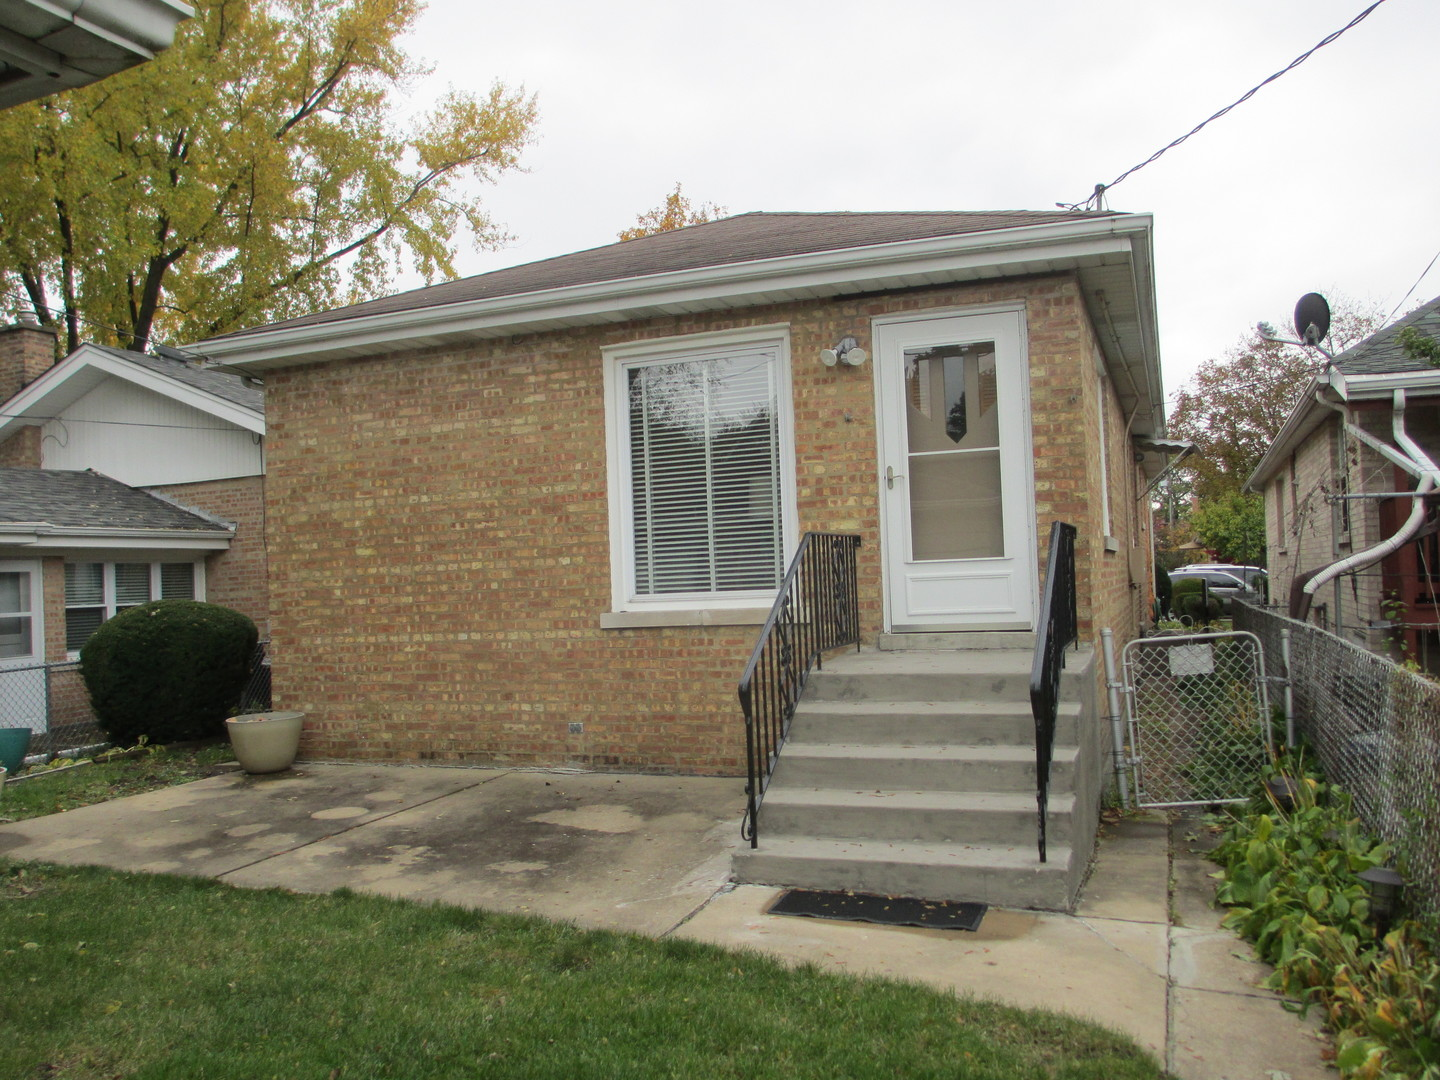 1905 North 75th, Elmwood Park, Illinois, 60707